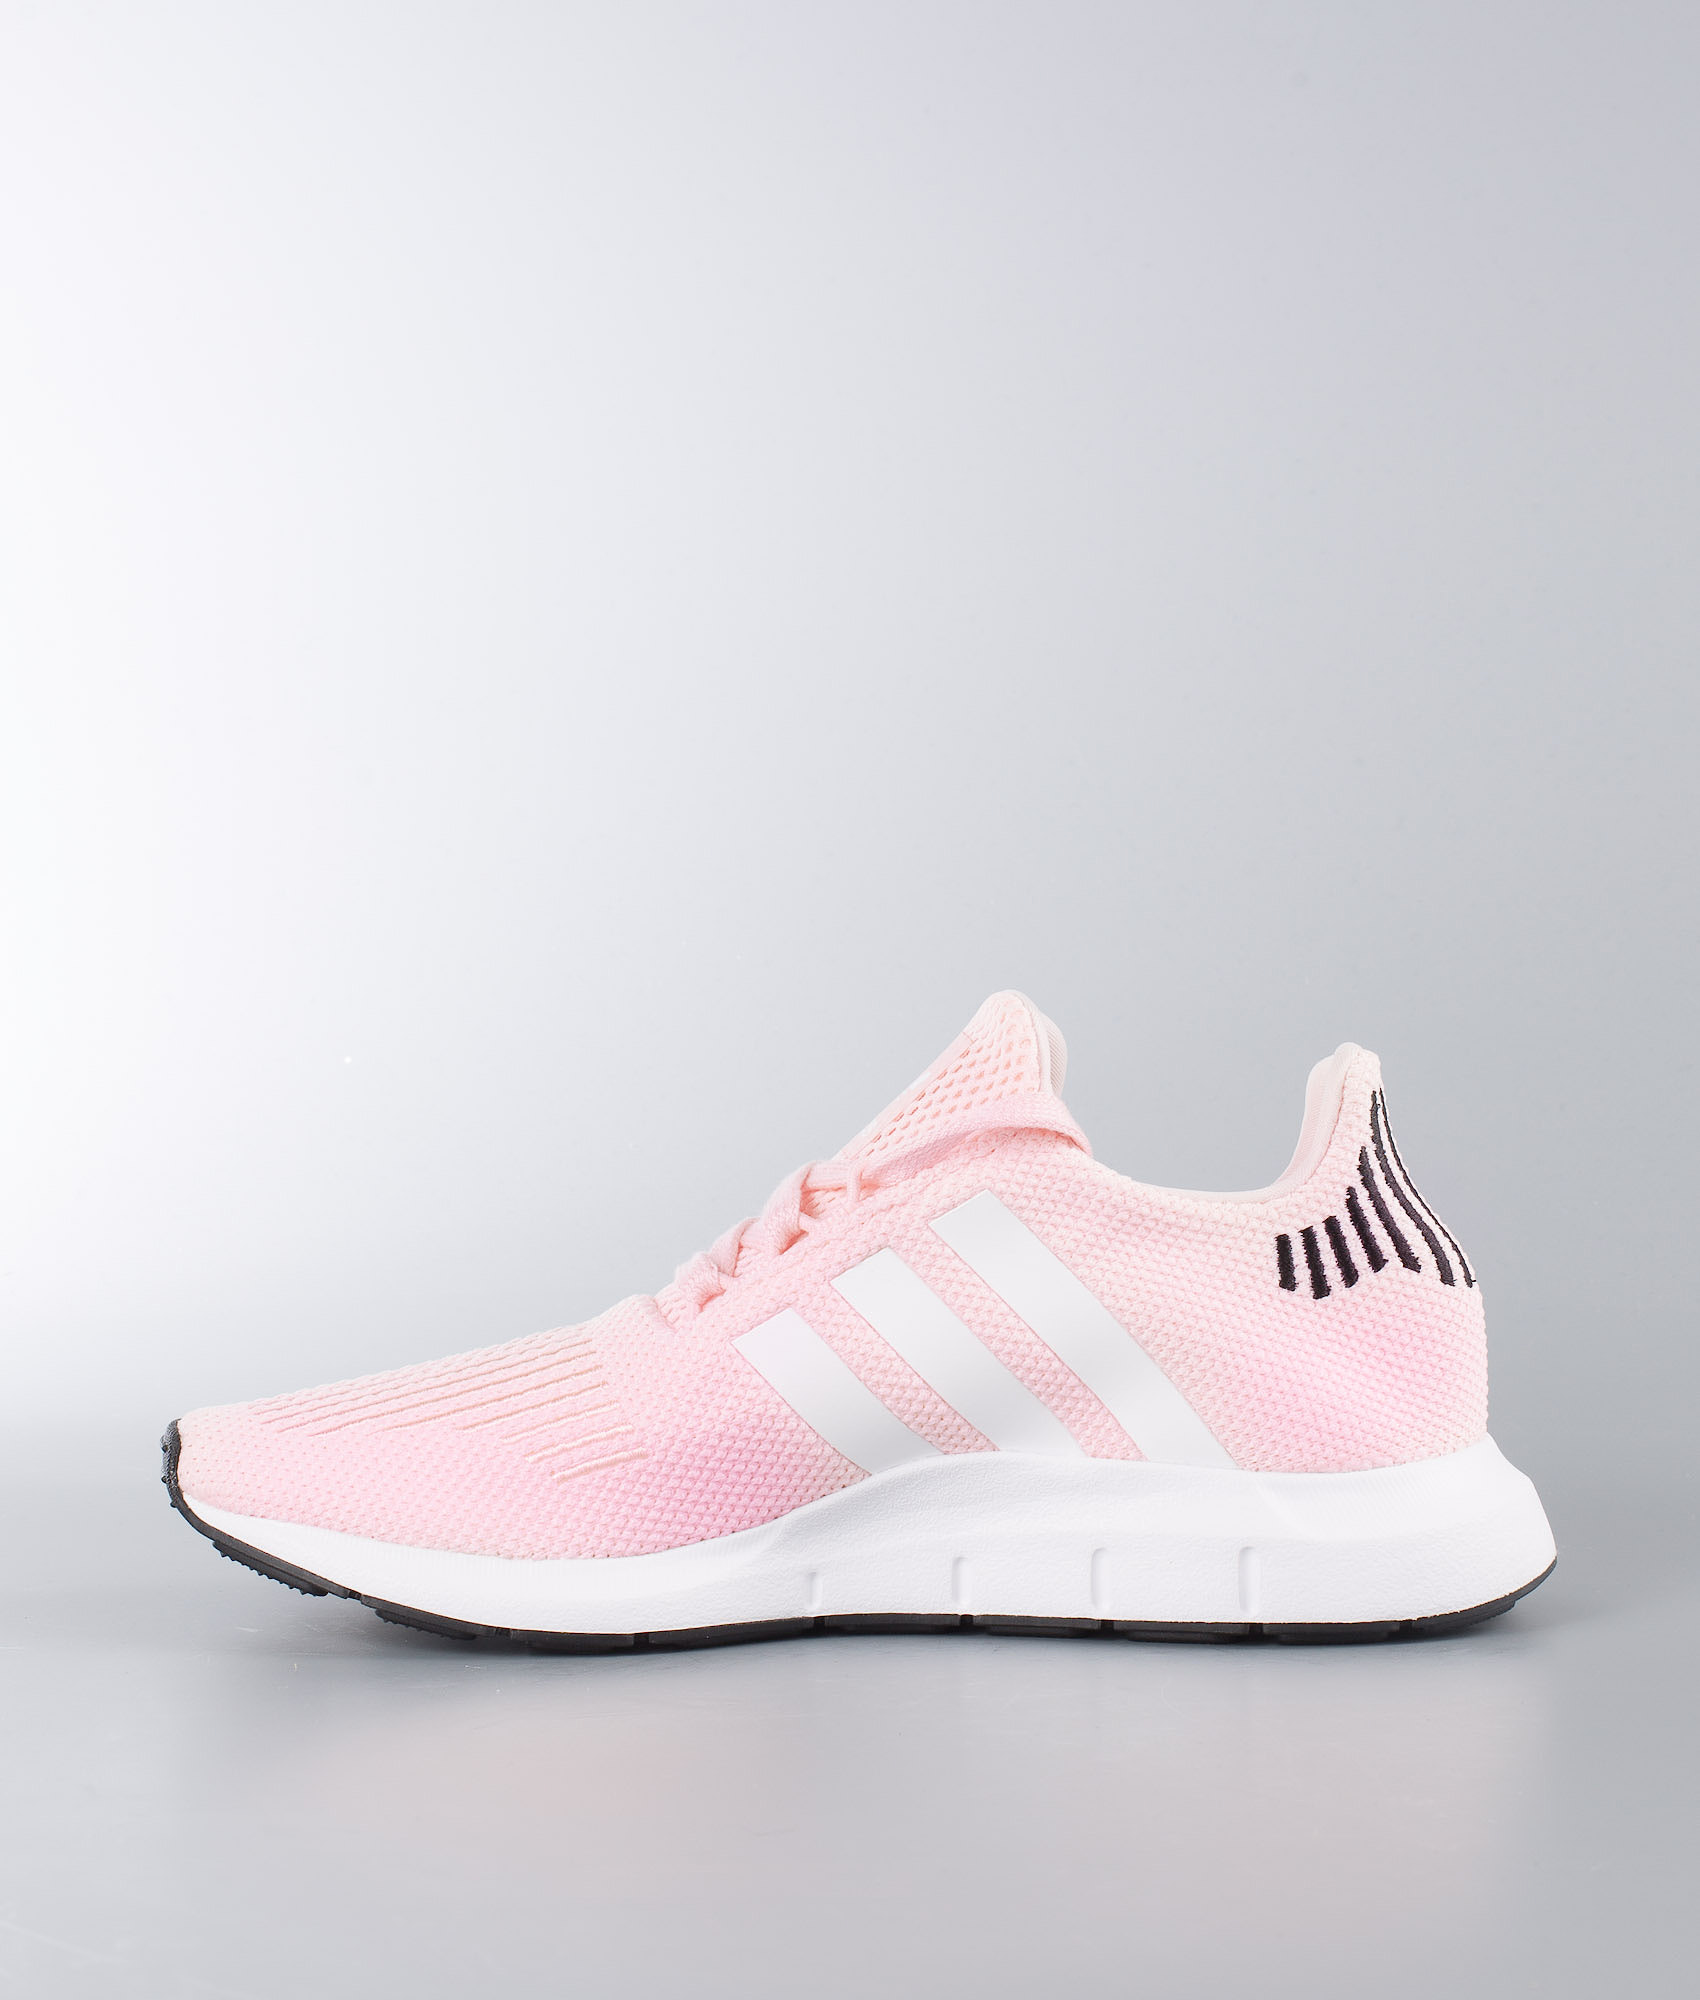 da96d0a18 Adidas Originals Swift Run W Shoes Ice Pink Ftwr White Core Black ...